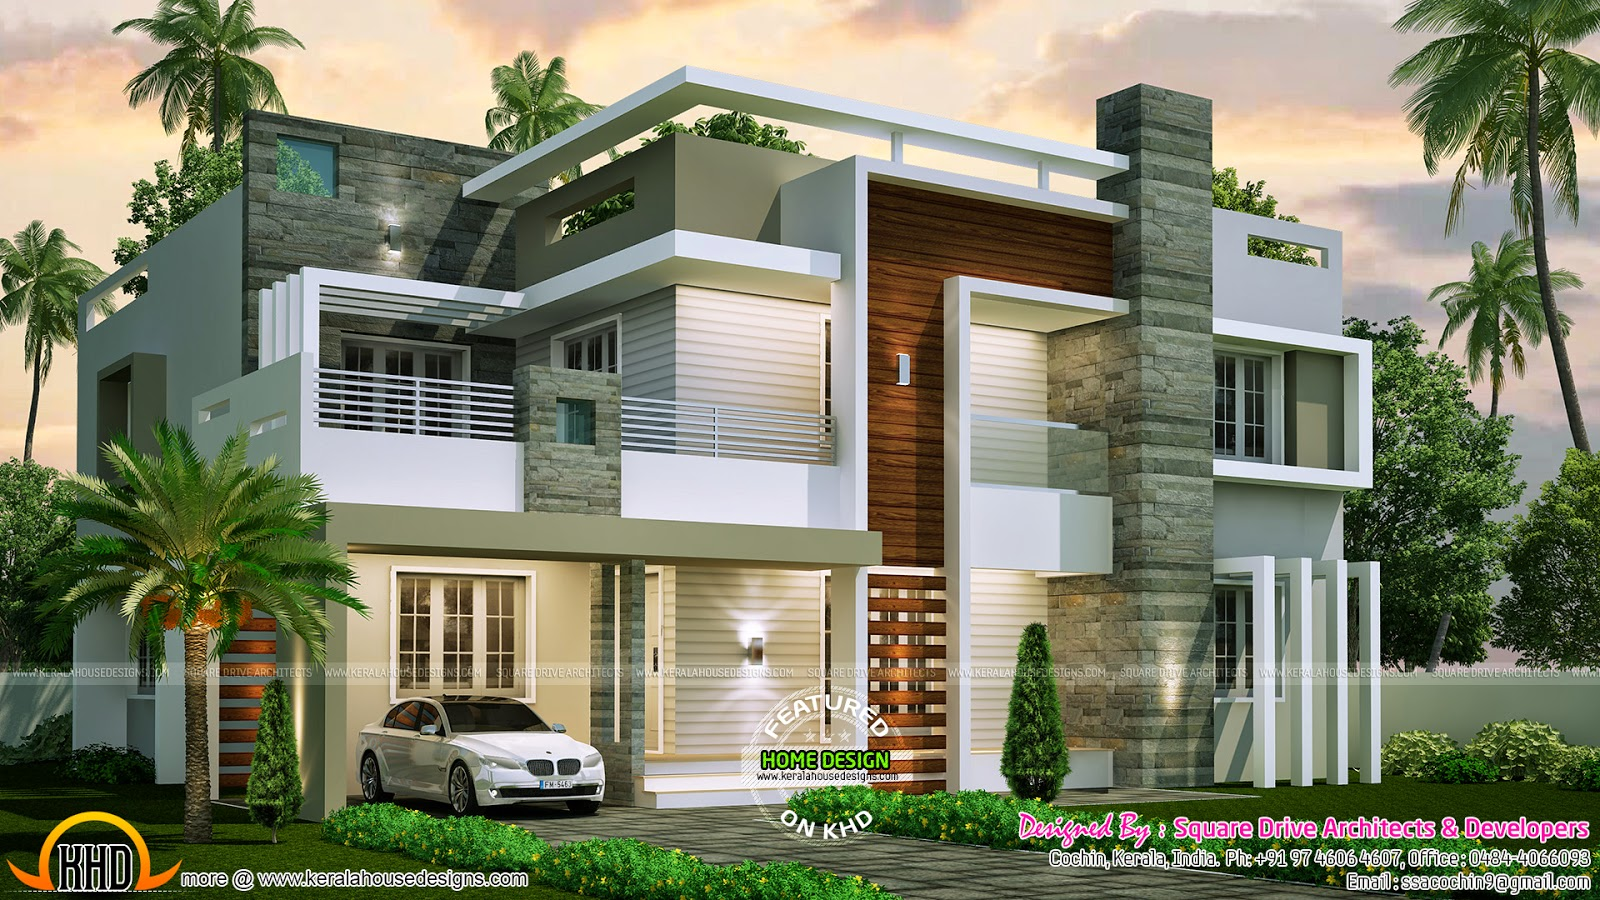 4 bedroom contemporary home design kerala home design and floor plans. Black Bedroom Furniture Sets. Home Design Ideas